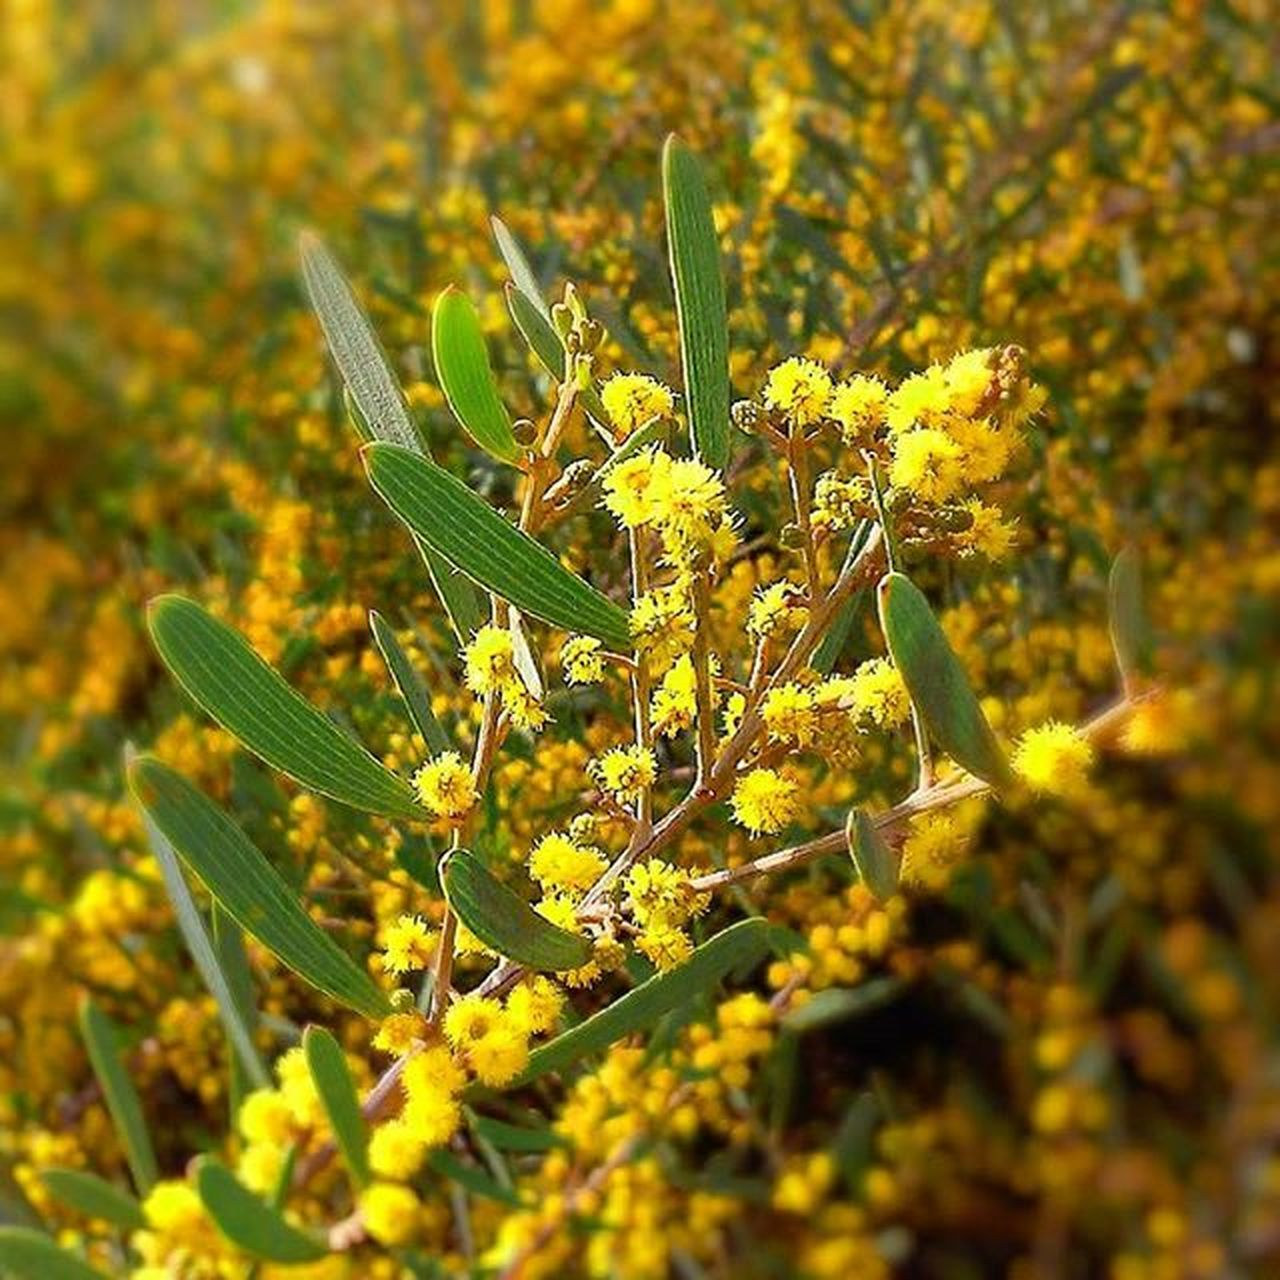 plant, nature, no people, growth, green color, close-up, day, outdoors, yellow, leaf, beauty in nature, animal themes